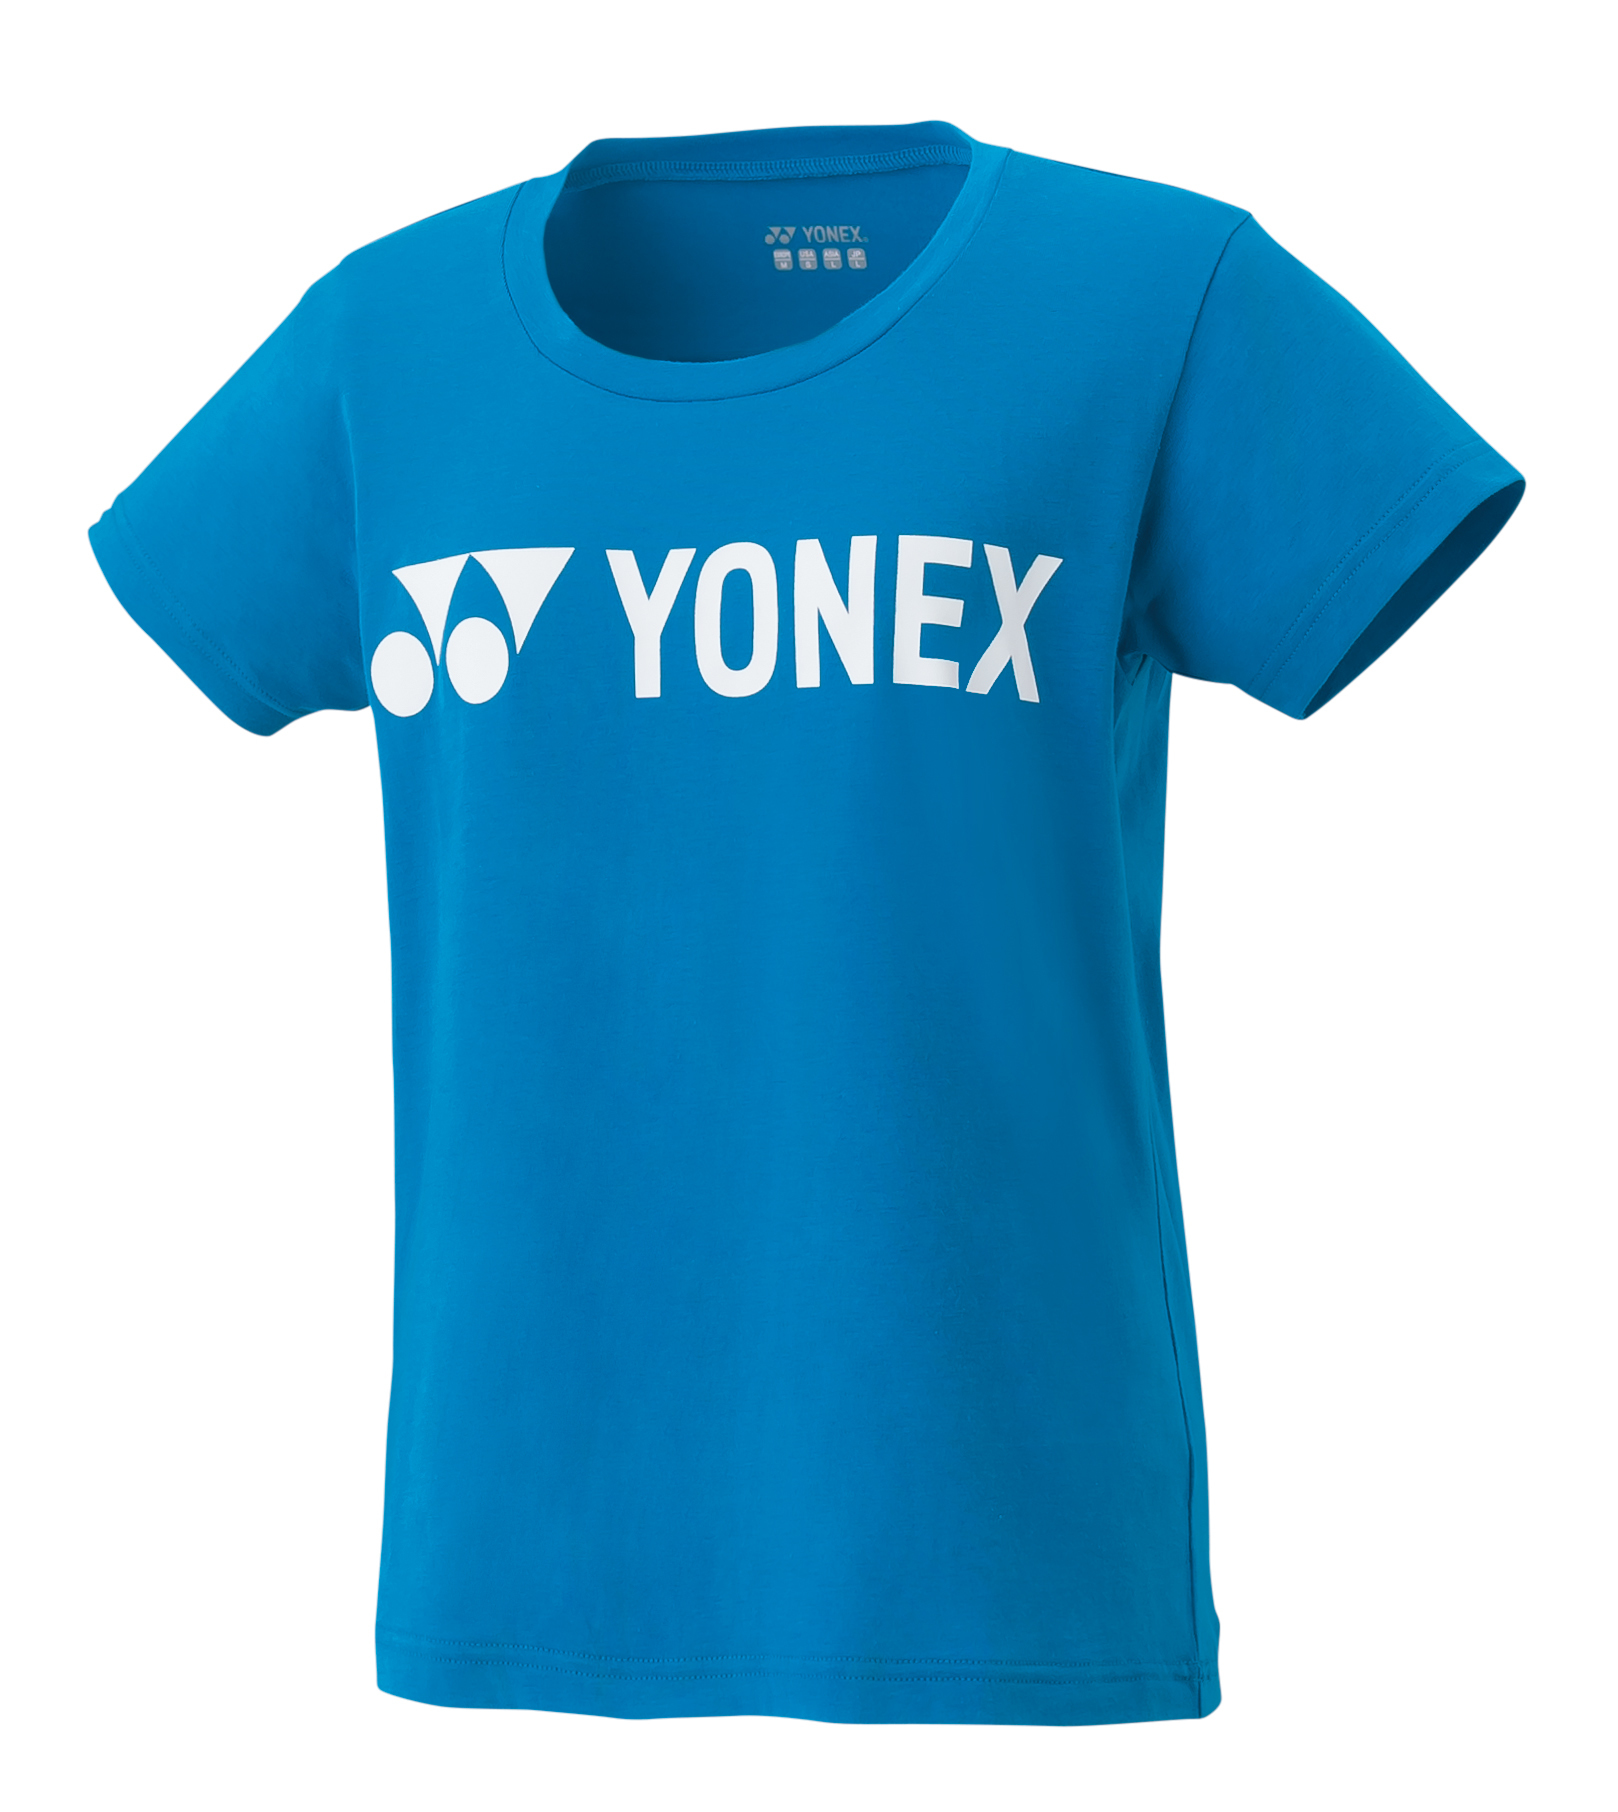 Yonex Womens T-Shirt 16313 Infinite Blue